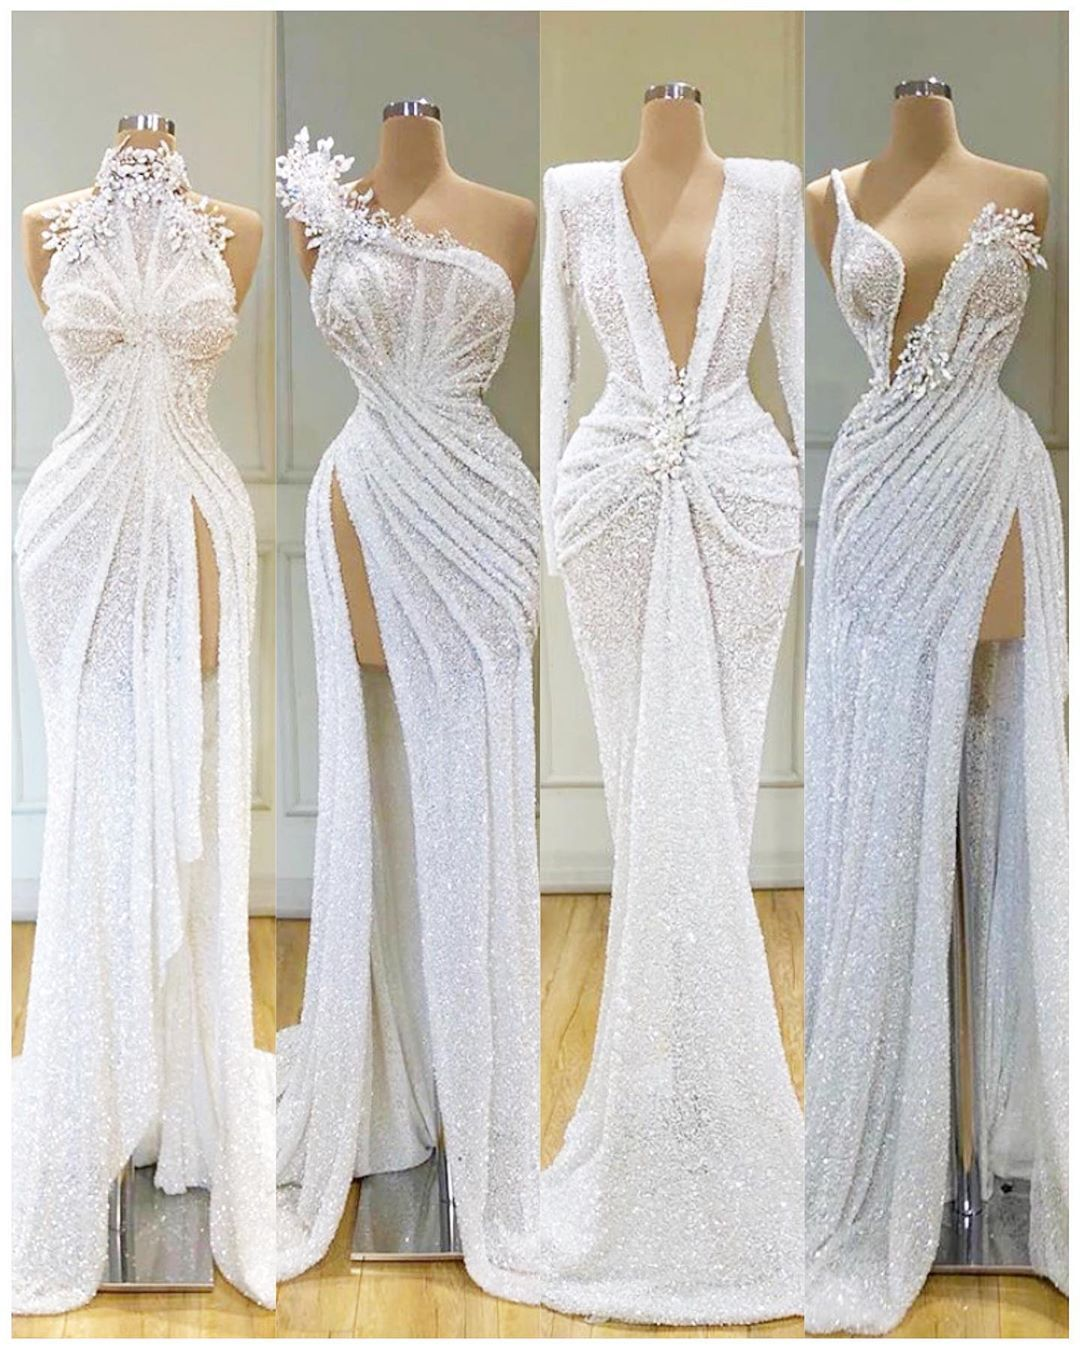 Would You Say Yes To These Dresses By Valdrinsahitiofficial From Left To Right 1 4 Which Is Your Fav Bride Event Dresses Fashion Dresses Dresses